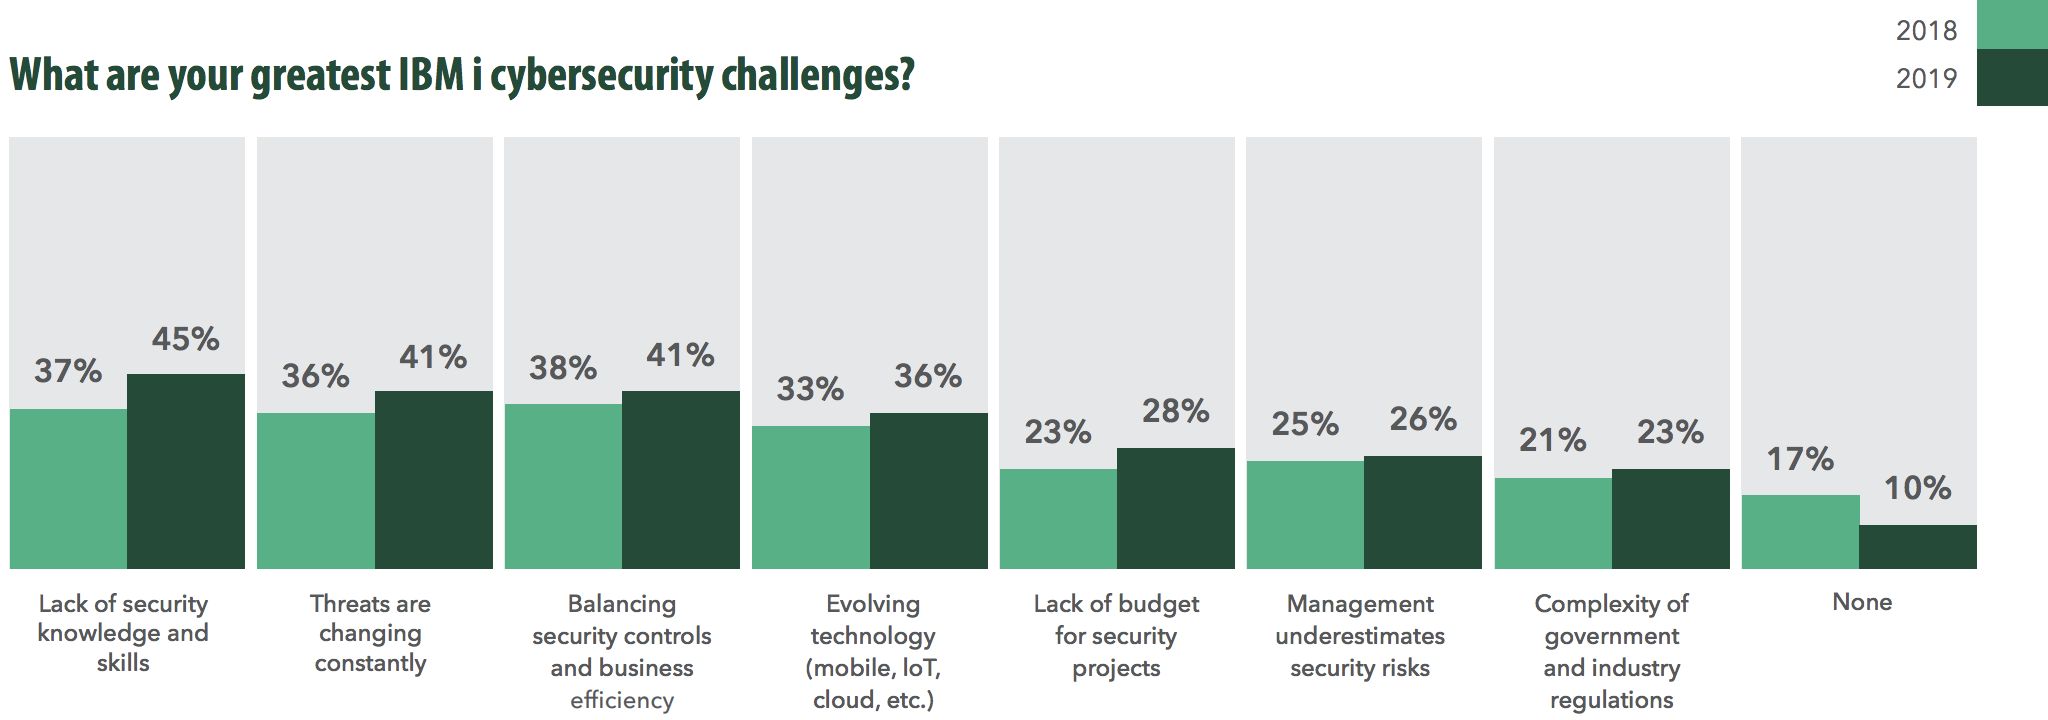 IBM i security challenges